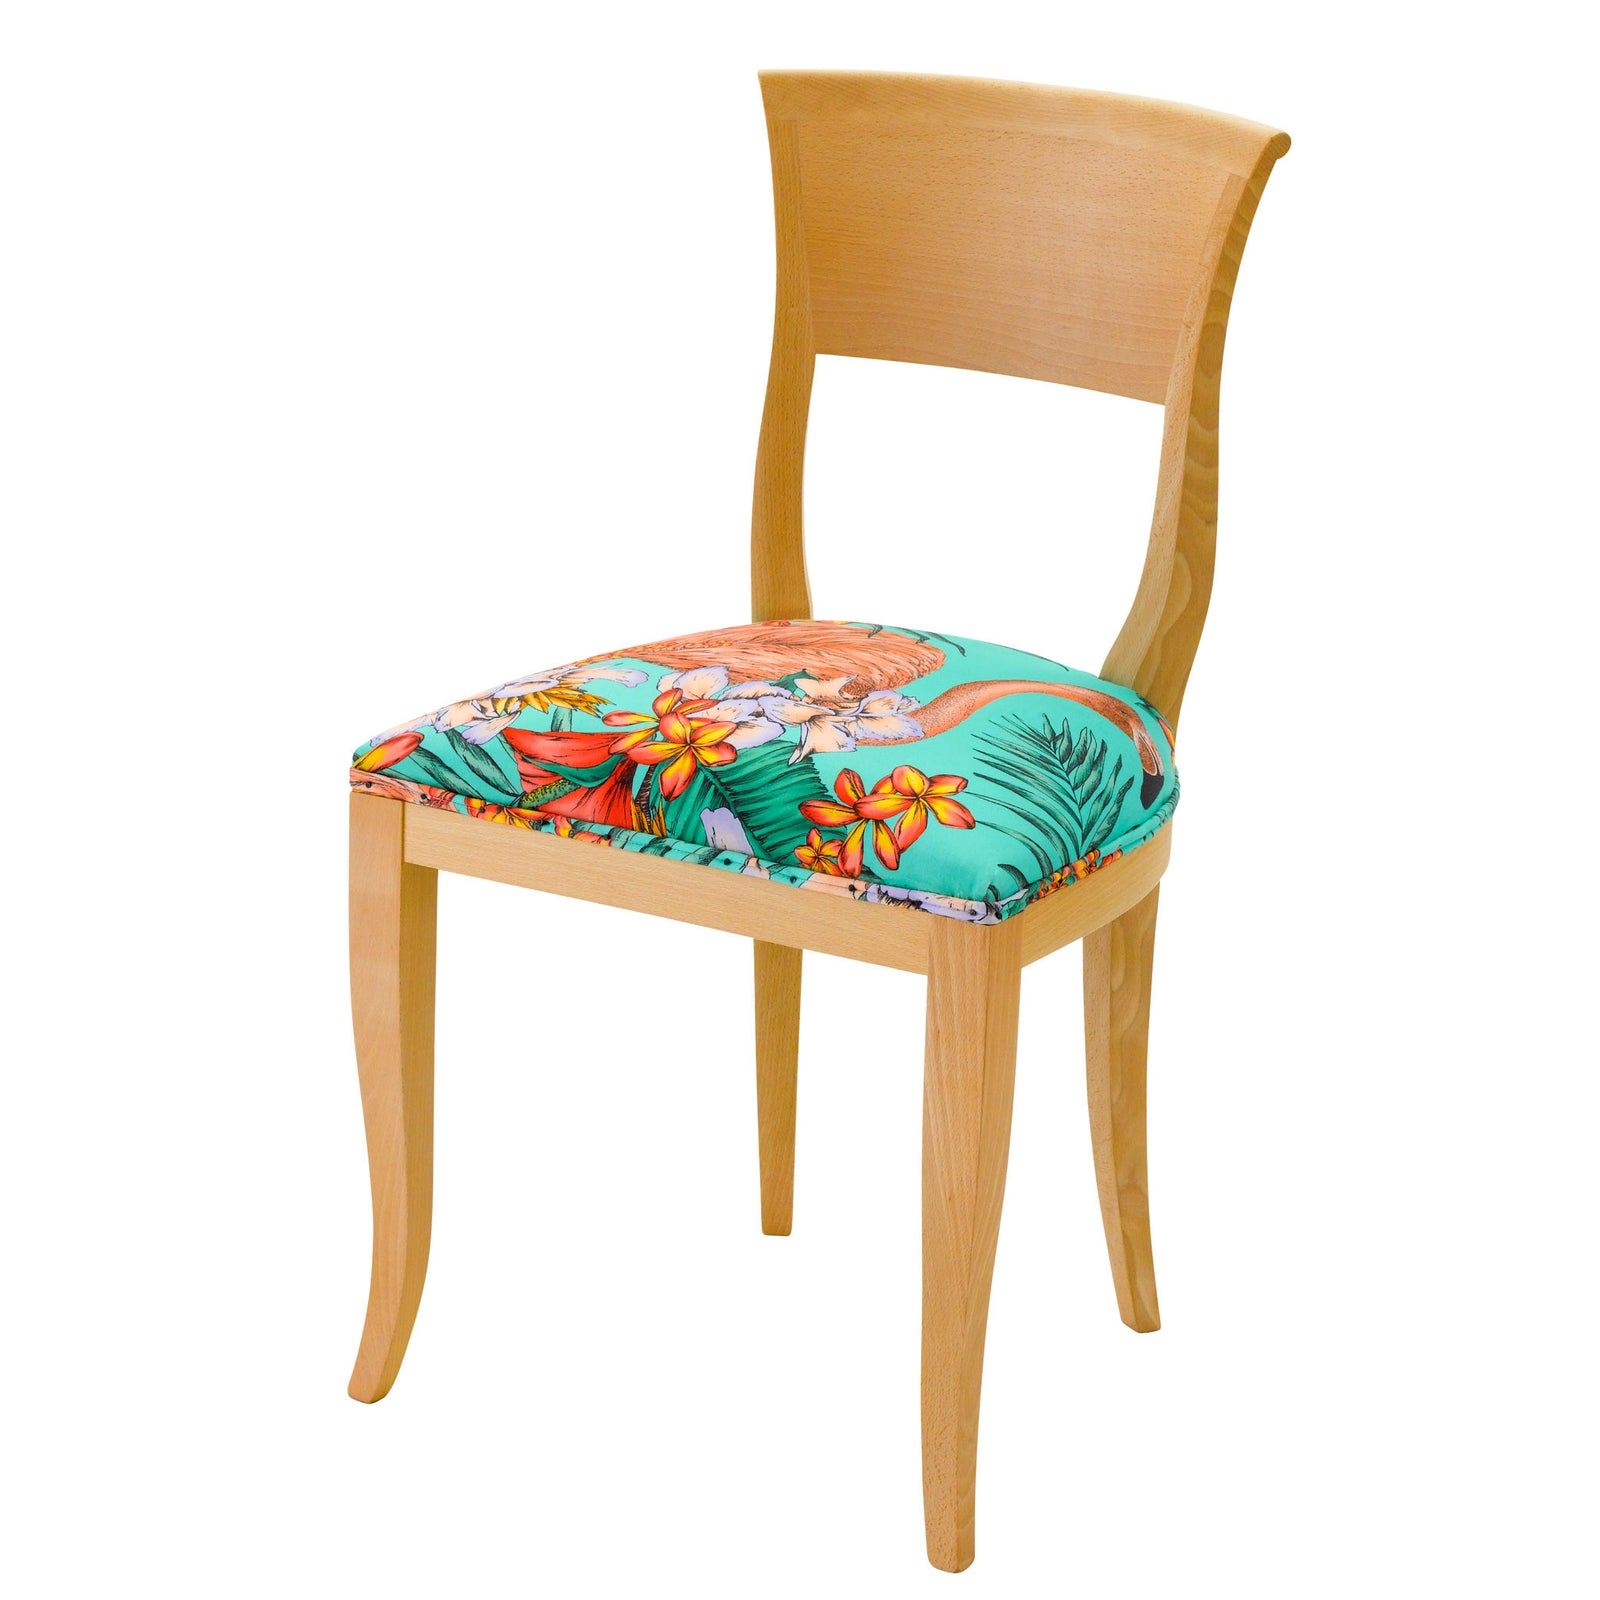 Designer dining chair with a natural wood finish and upholstered in a colourful flamingo print by Matthew Williamson